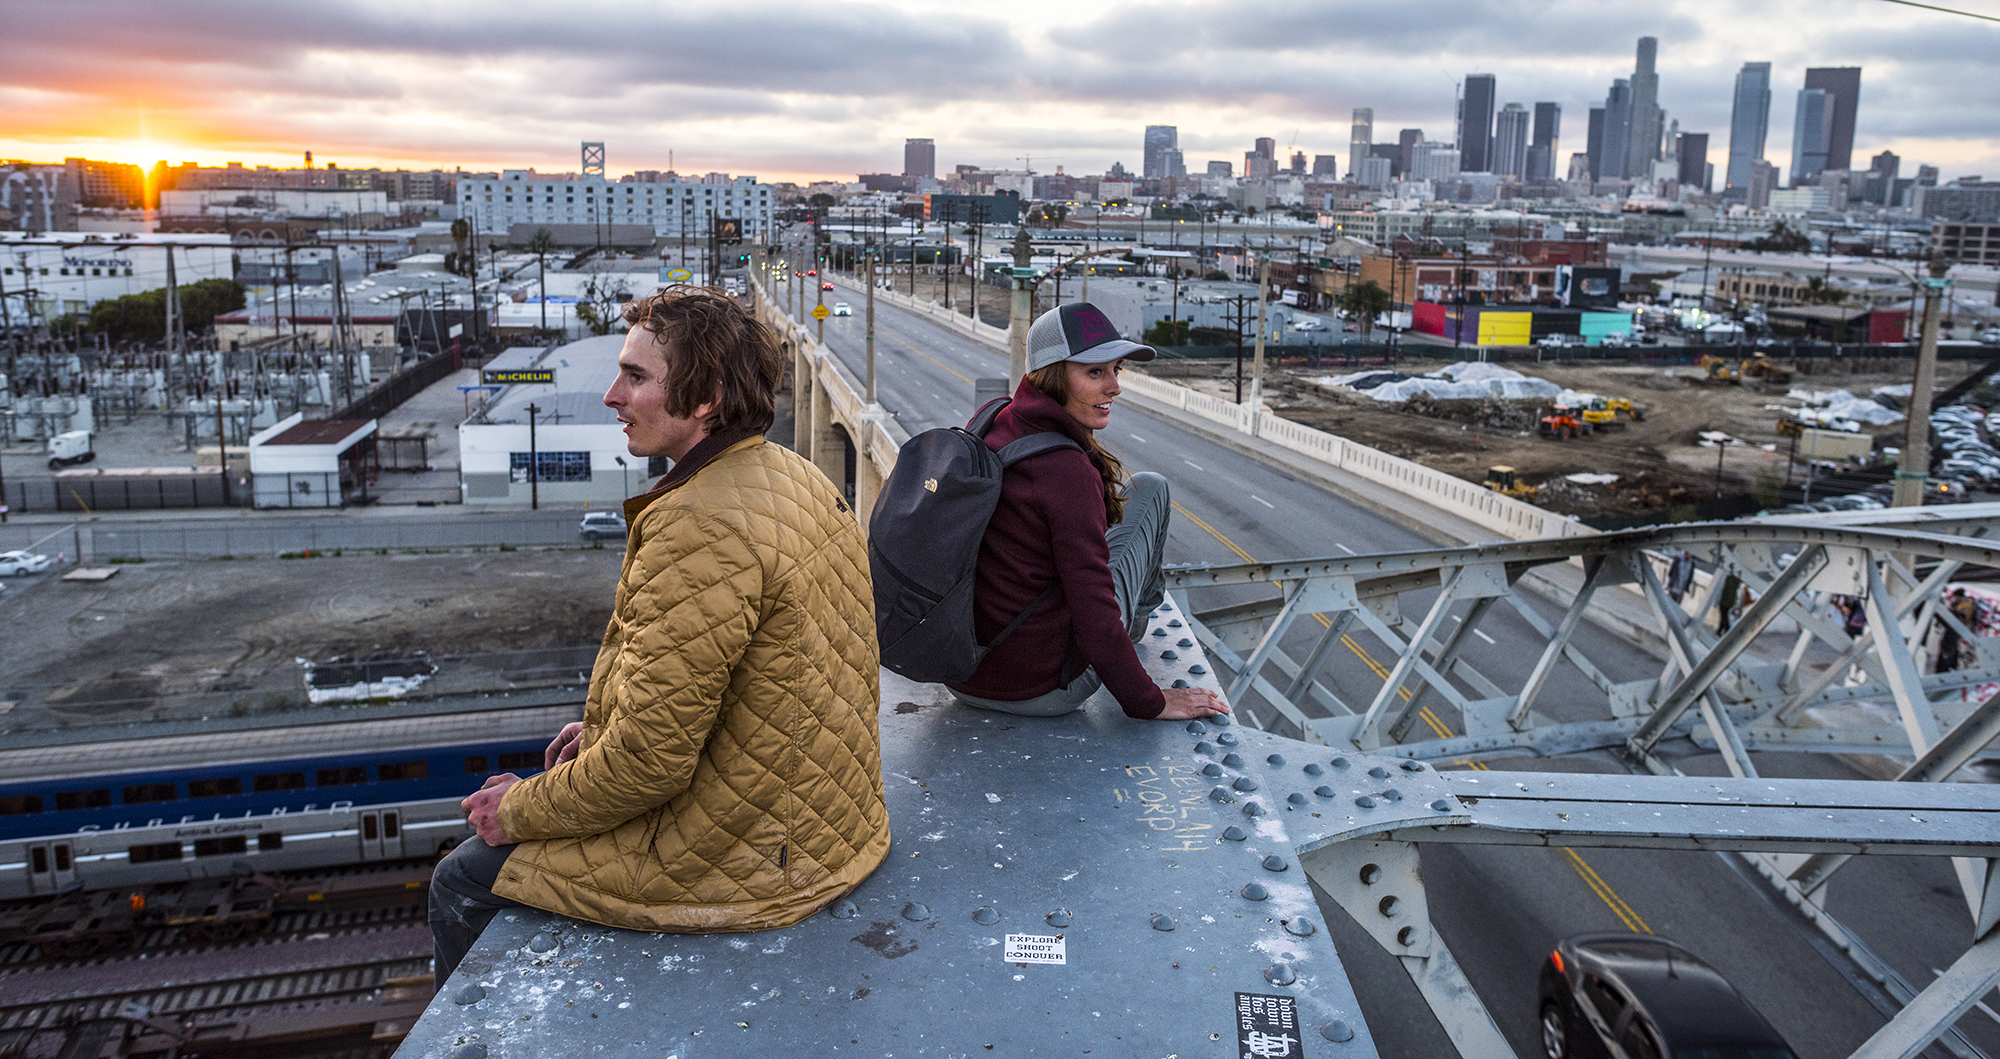 Daniel Woods and Alex Johnson. Los Angeles, California. Photography by Tim Kemple.